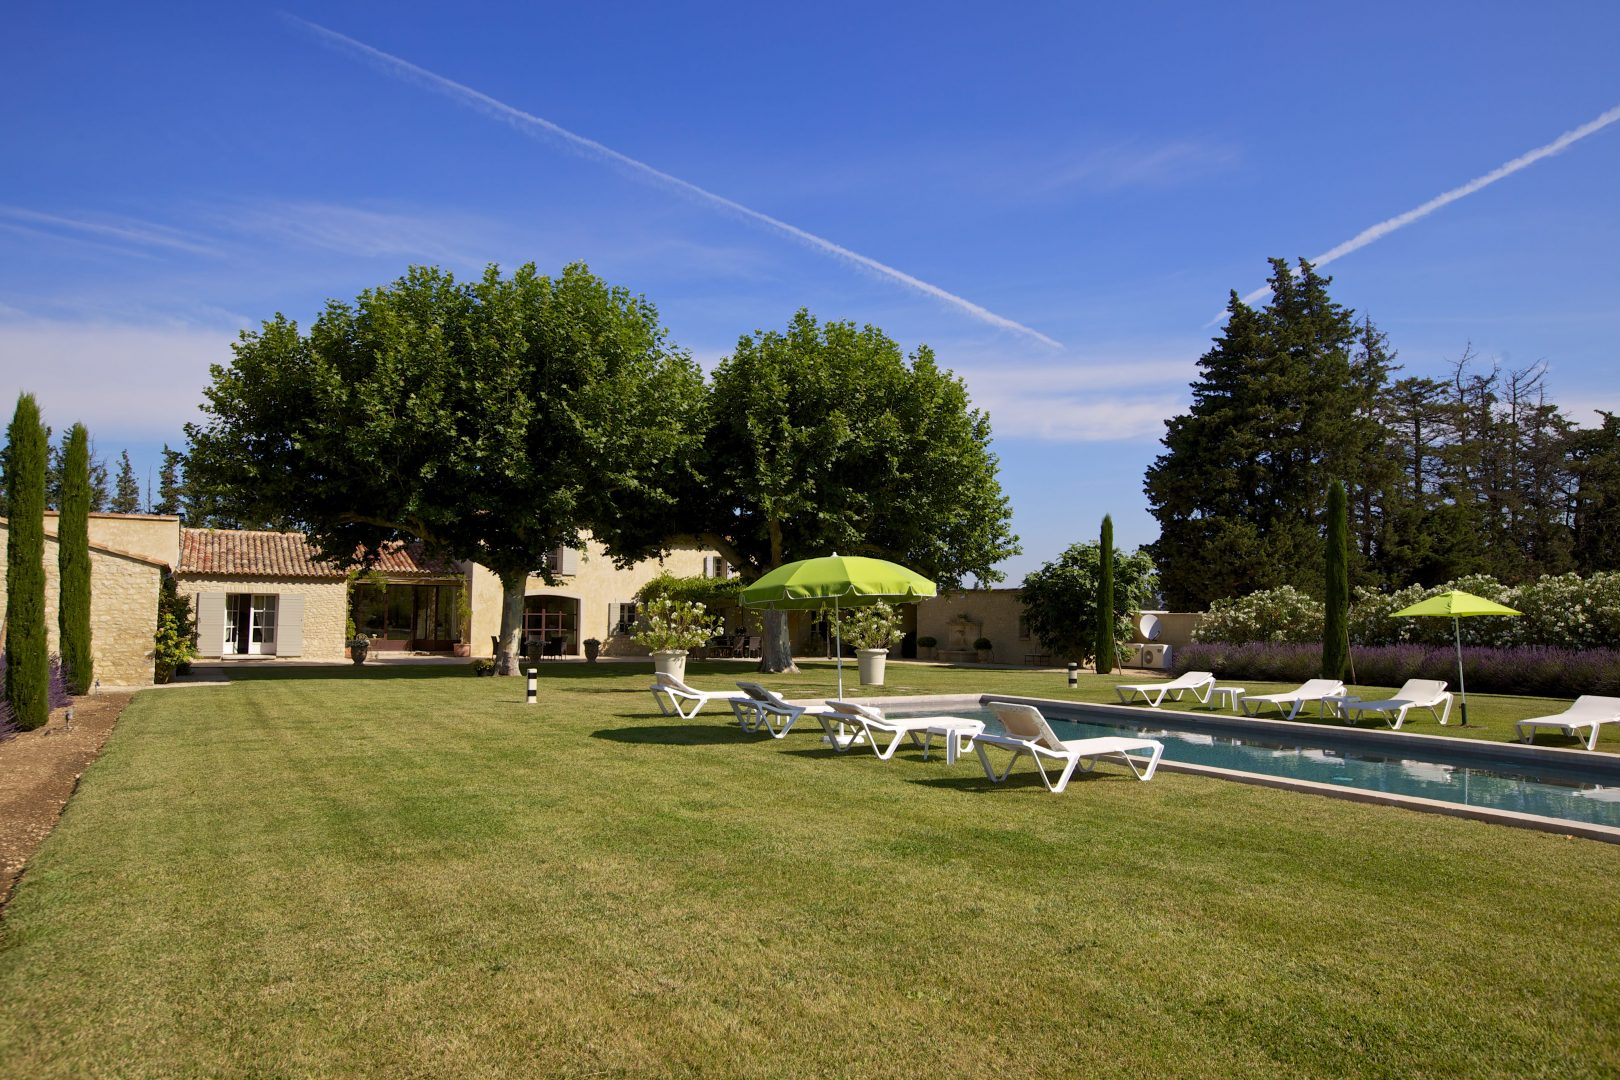 Luxury villa in Provence. Sleeps 10. Private pool. Pool House, Air Conditioning. Tennis nearby.